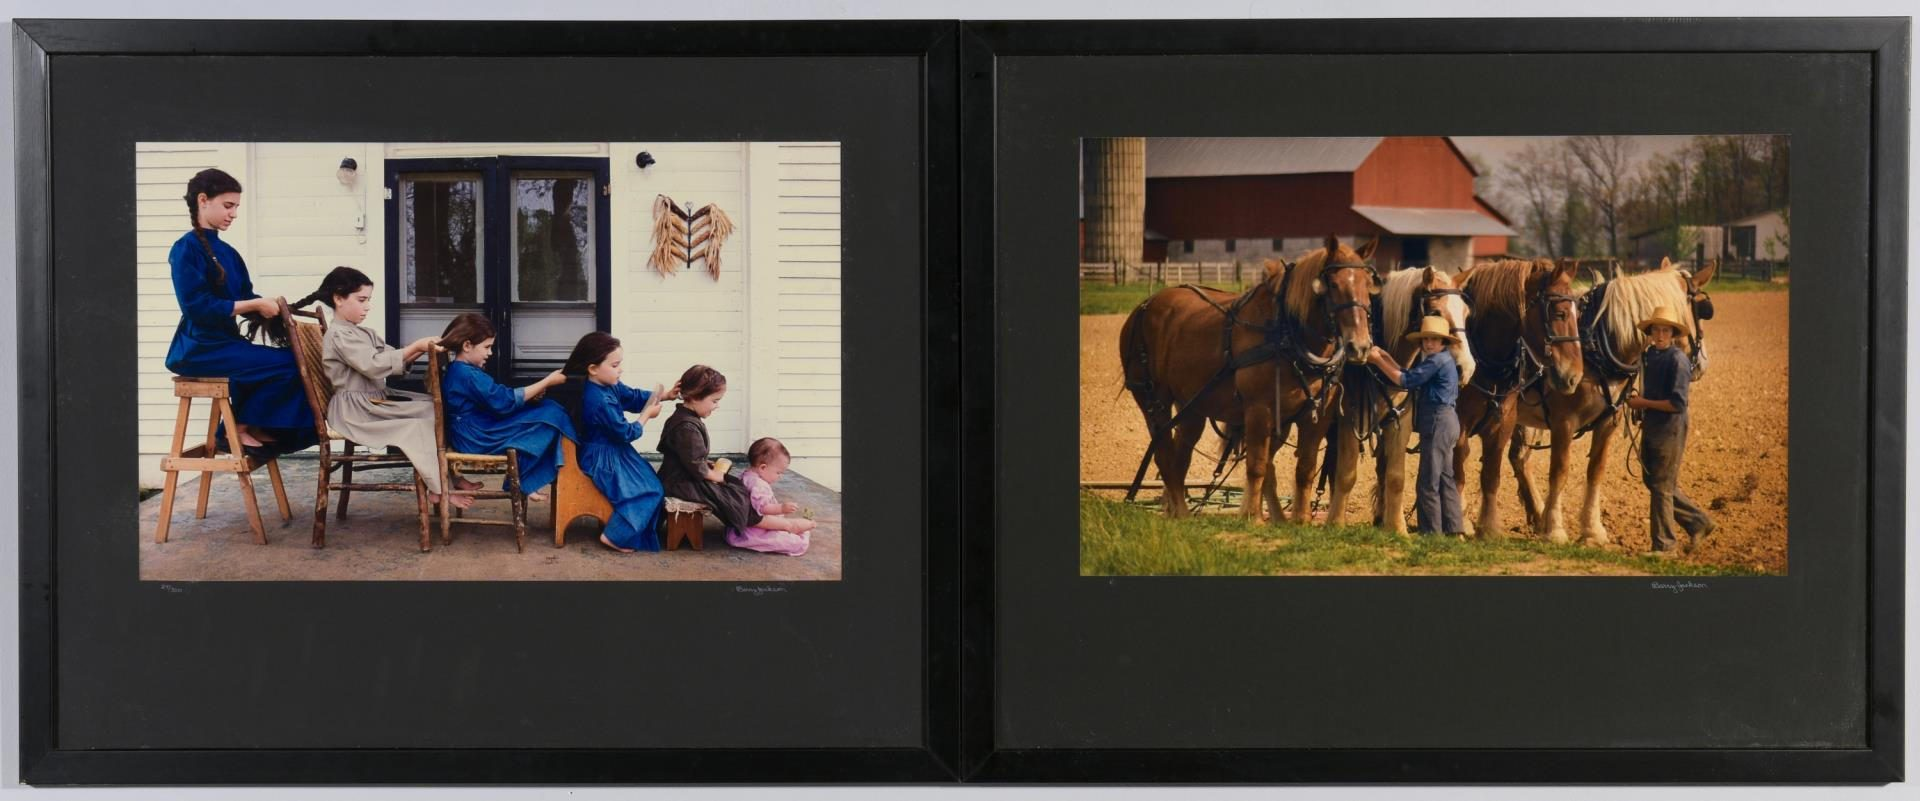 Lot 124: 2 Barry Jackson framed photos of Amish